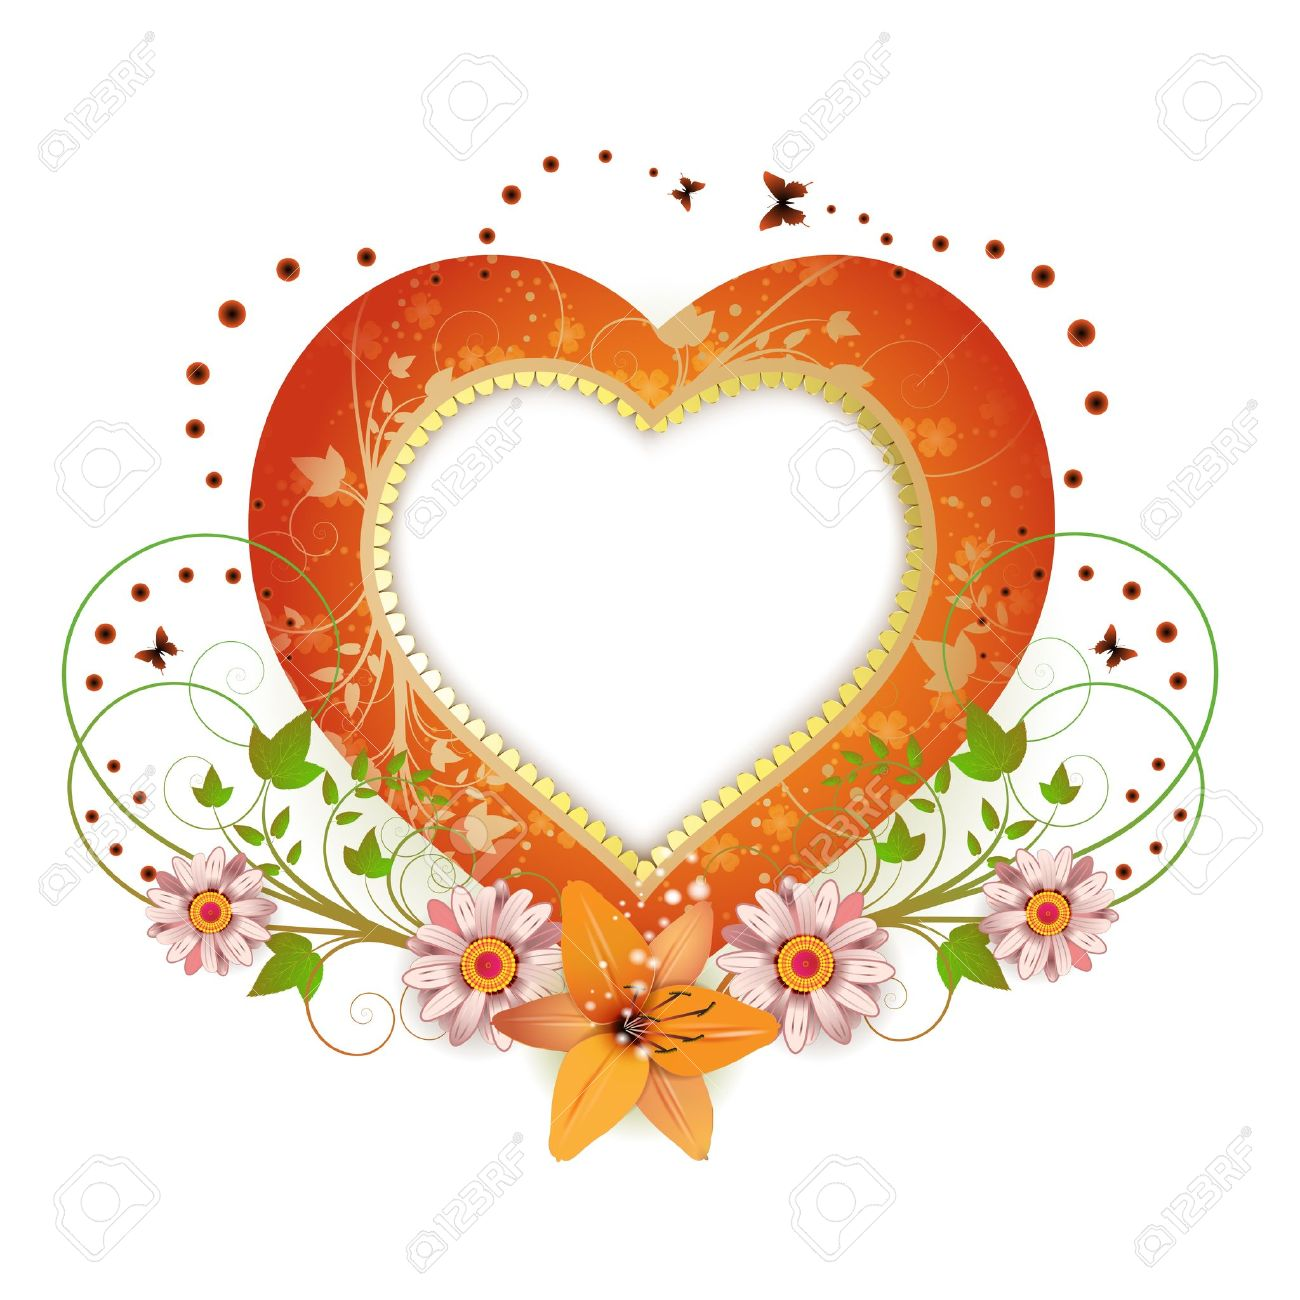 frame background with heart shape and flowers royalty free, Beautiful flower